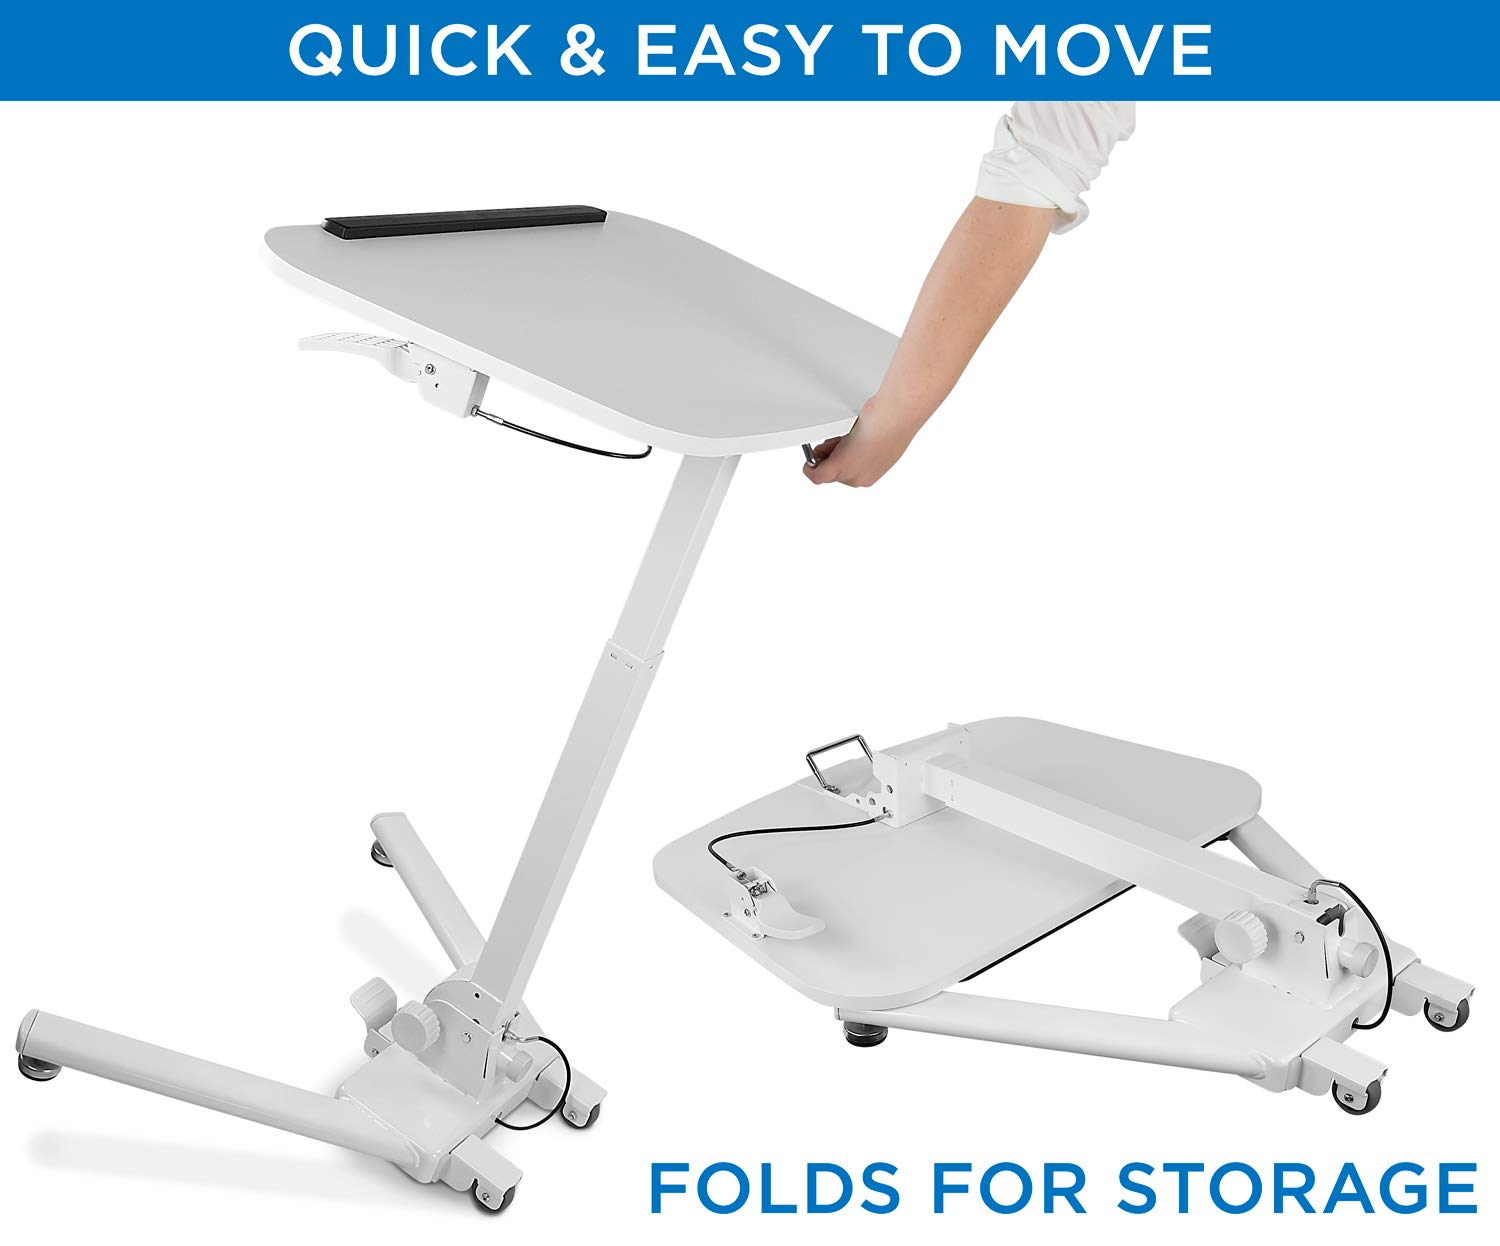 Mount-It! Standing Folding Laptop Cart, Sit Stand Mobile Desk with Height Adjustable 31.1'' x 20.5'' Platform, Supports up to 17.6 lbs, White (MI-7949) by Mount-It! (Image #4)